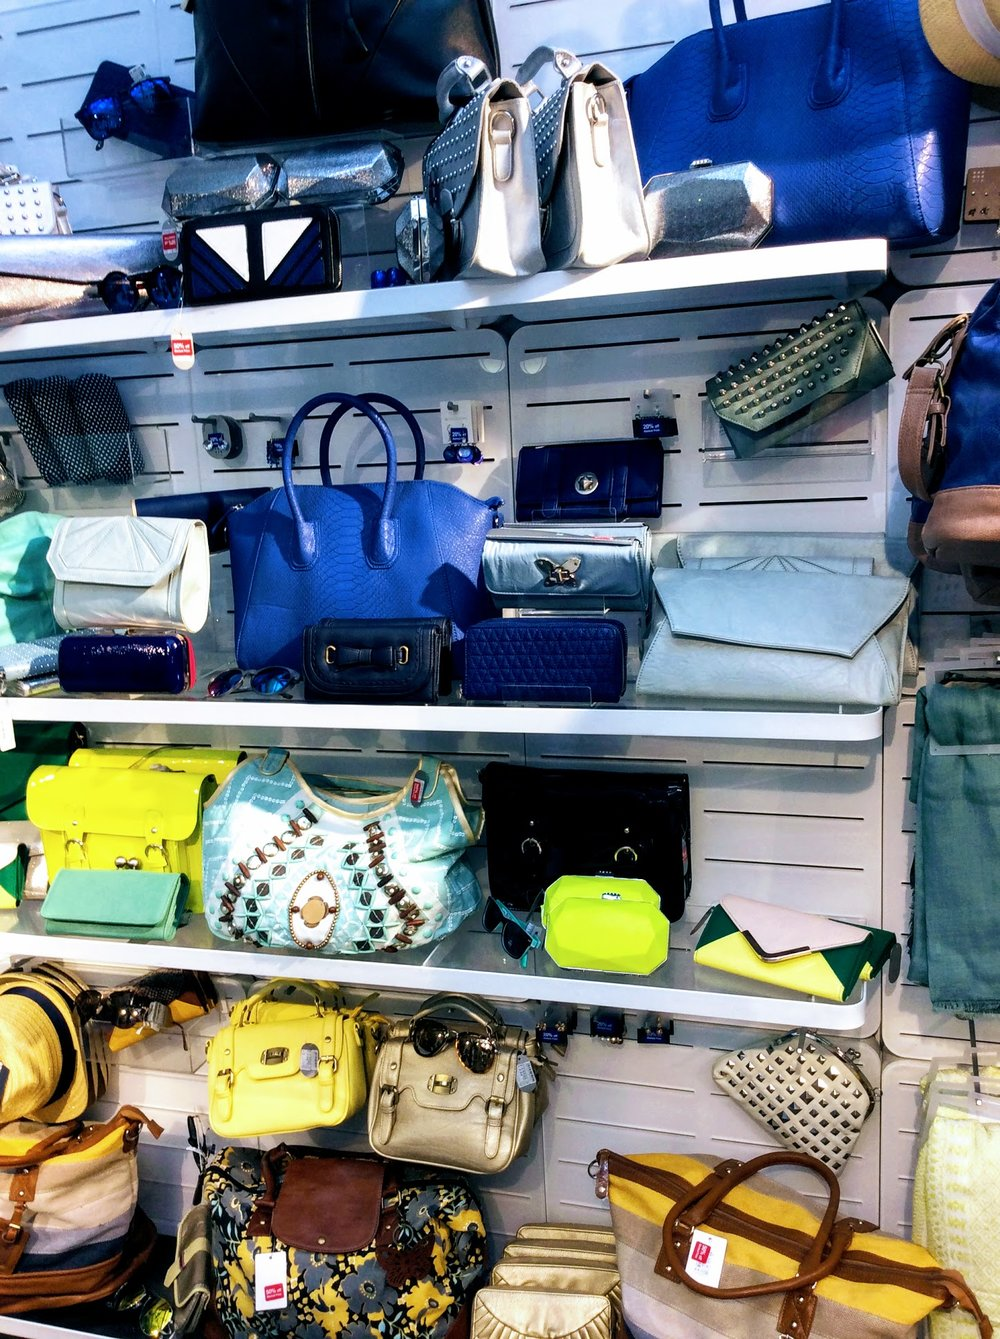 An array of jewel coloured bags from the tempting Oxfam accessory store SIX 4 GOOD.